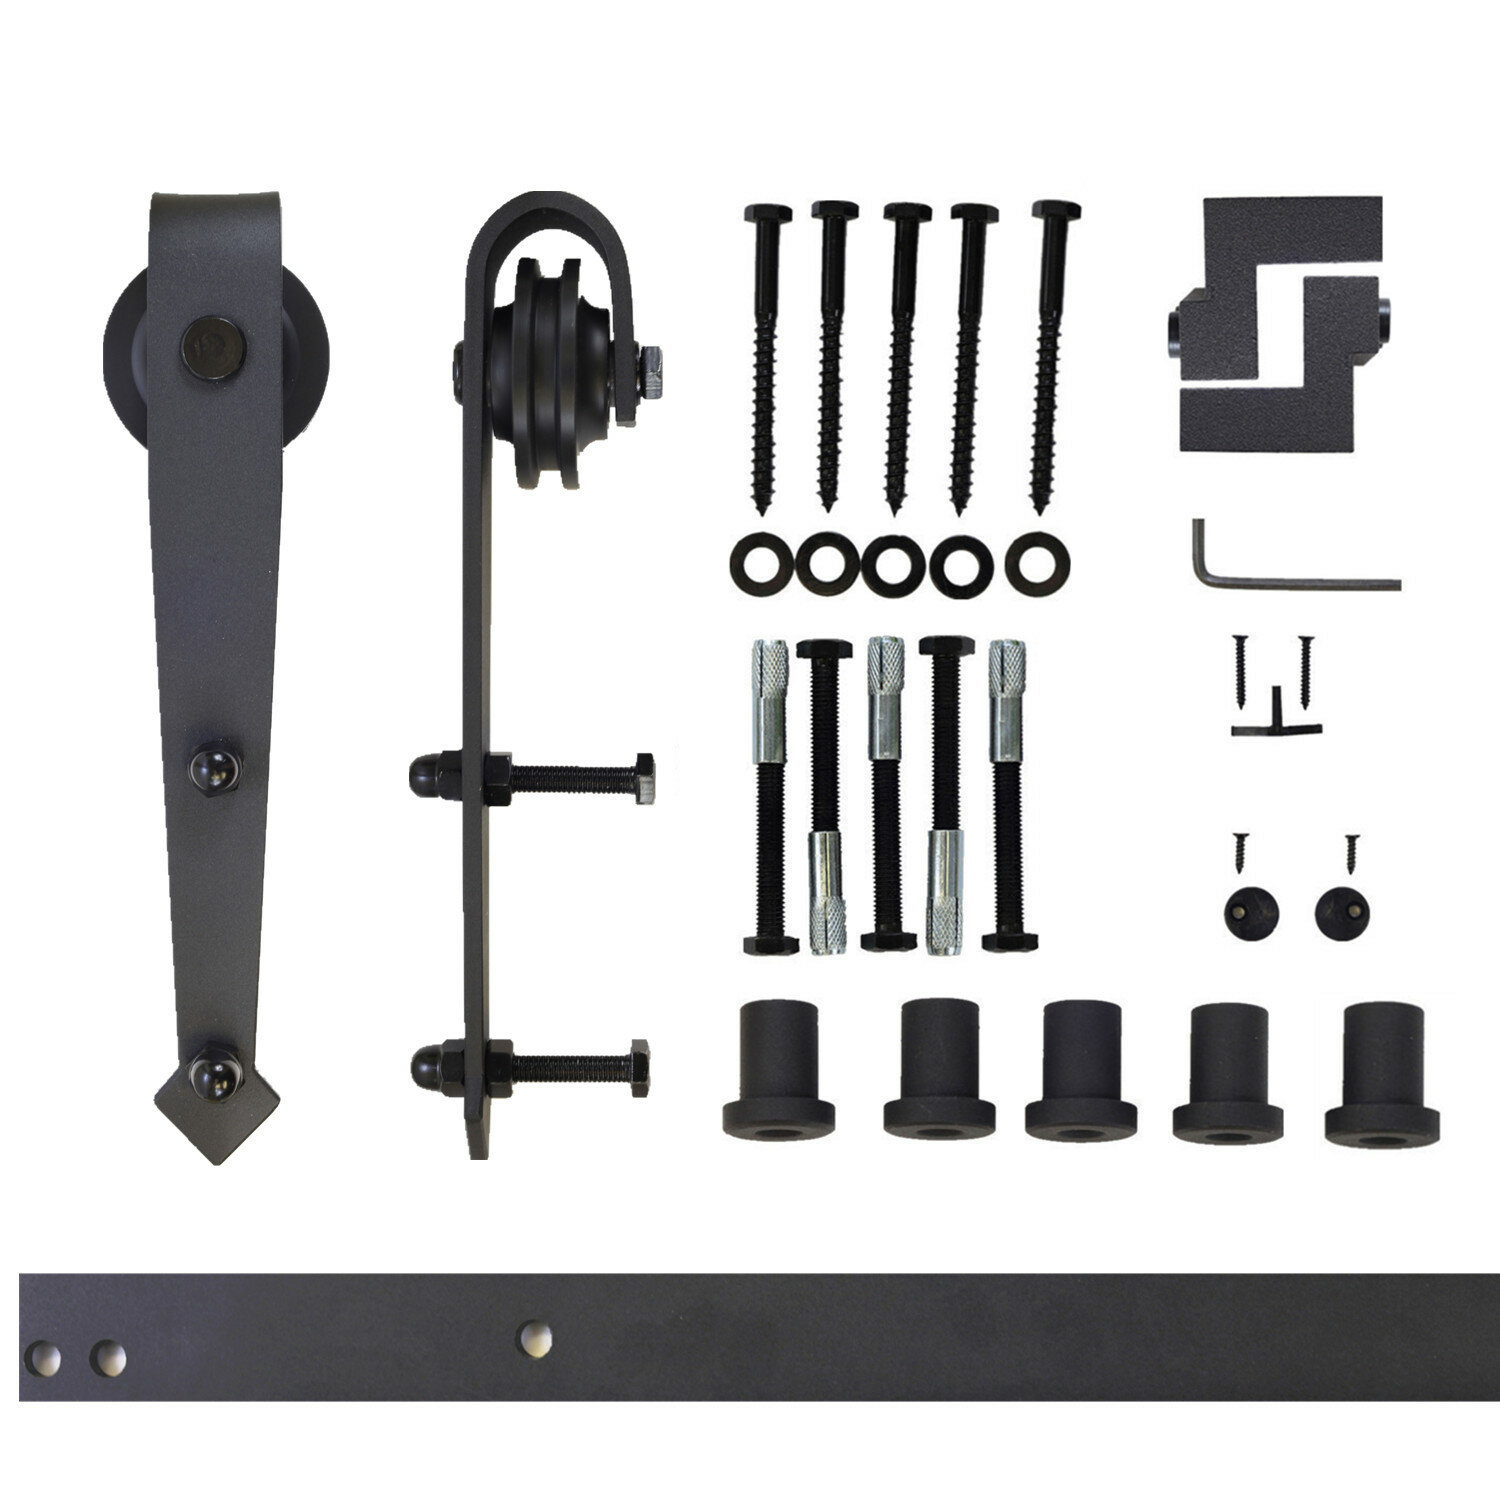 Vancleef Arrow Sliding Standard Single Track Barn Door Hardware Kit Wayfair